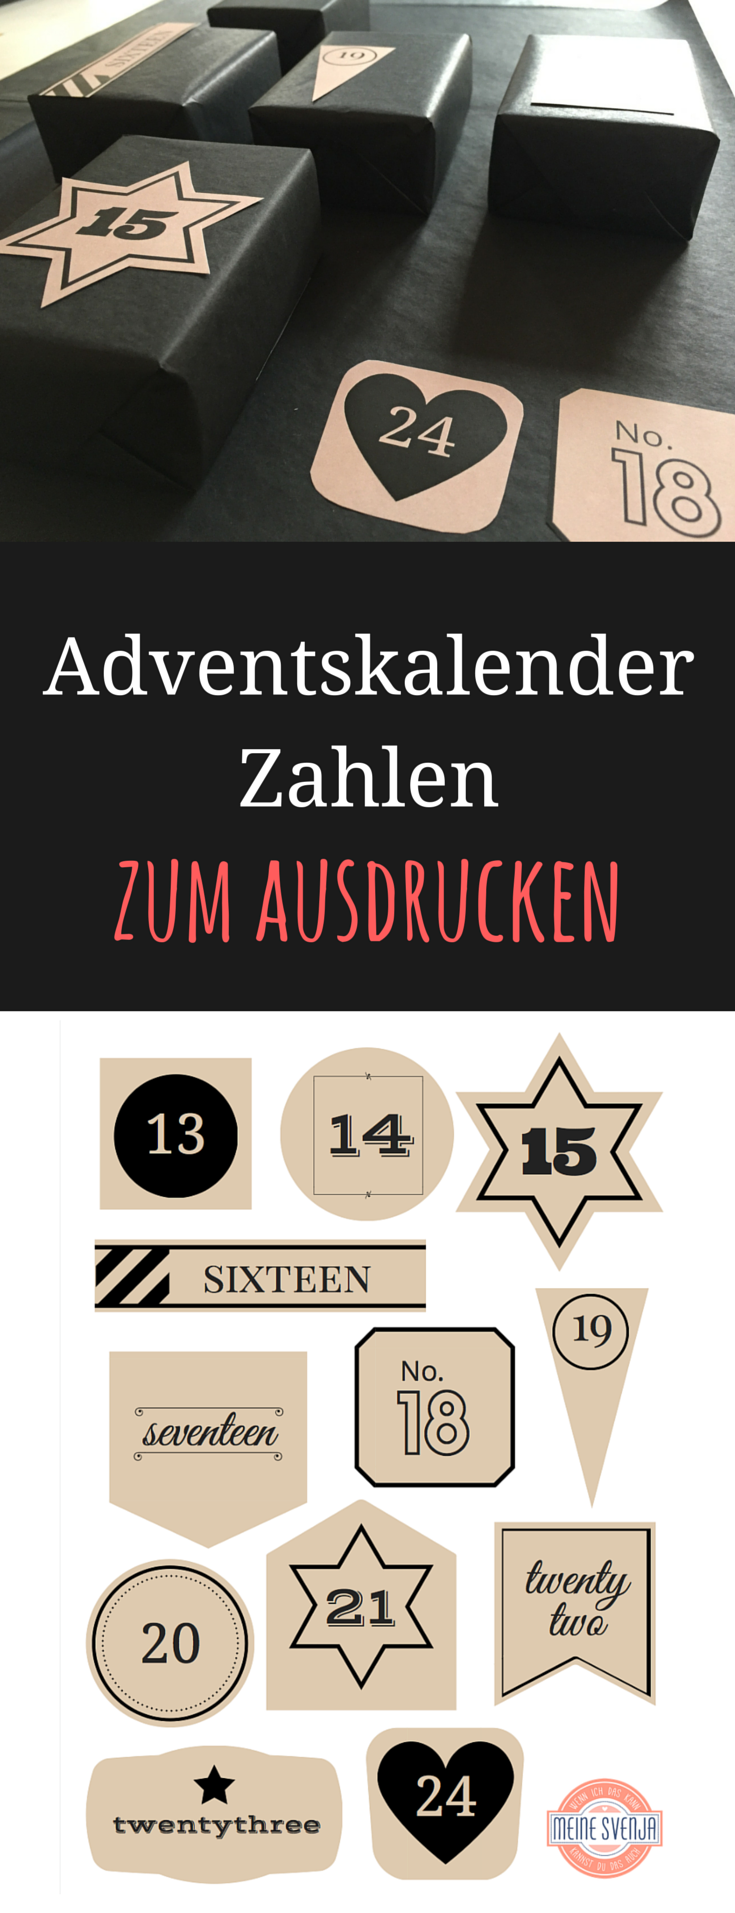 adventskalender zahlen zum ausdrucken meine svenja. Black Bedroom Furniture Sets. Home Design Ideas